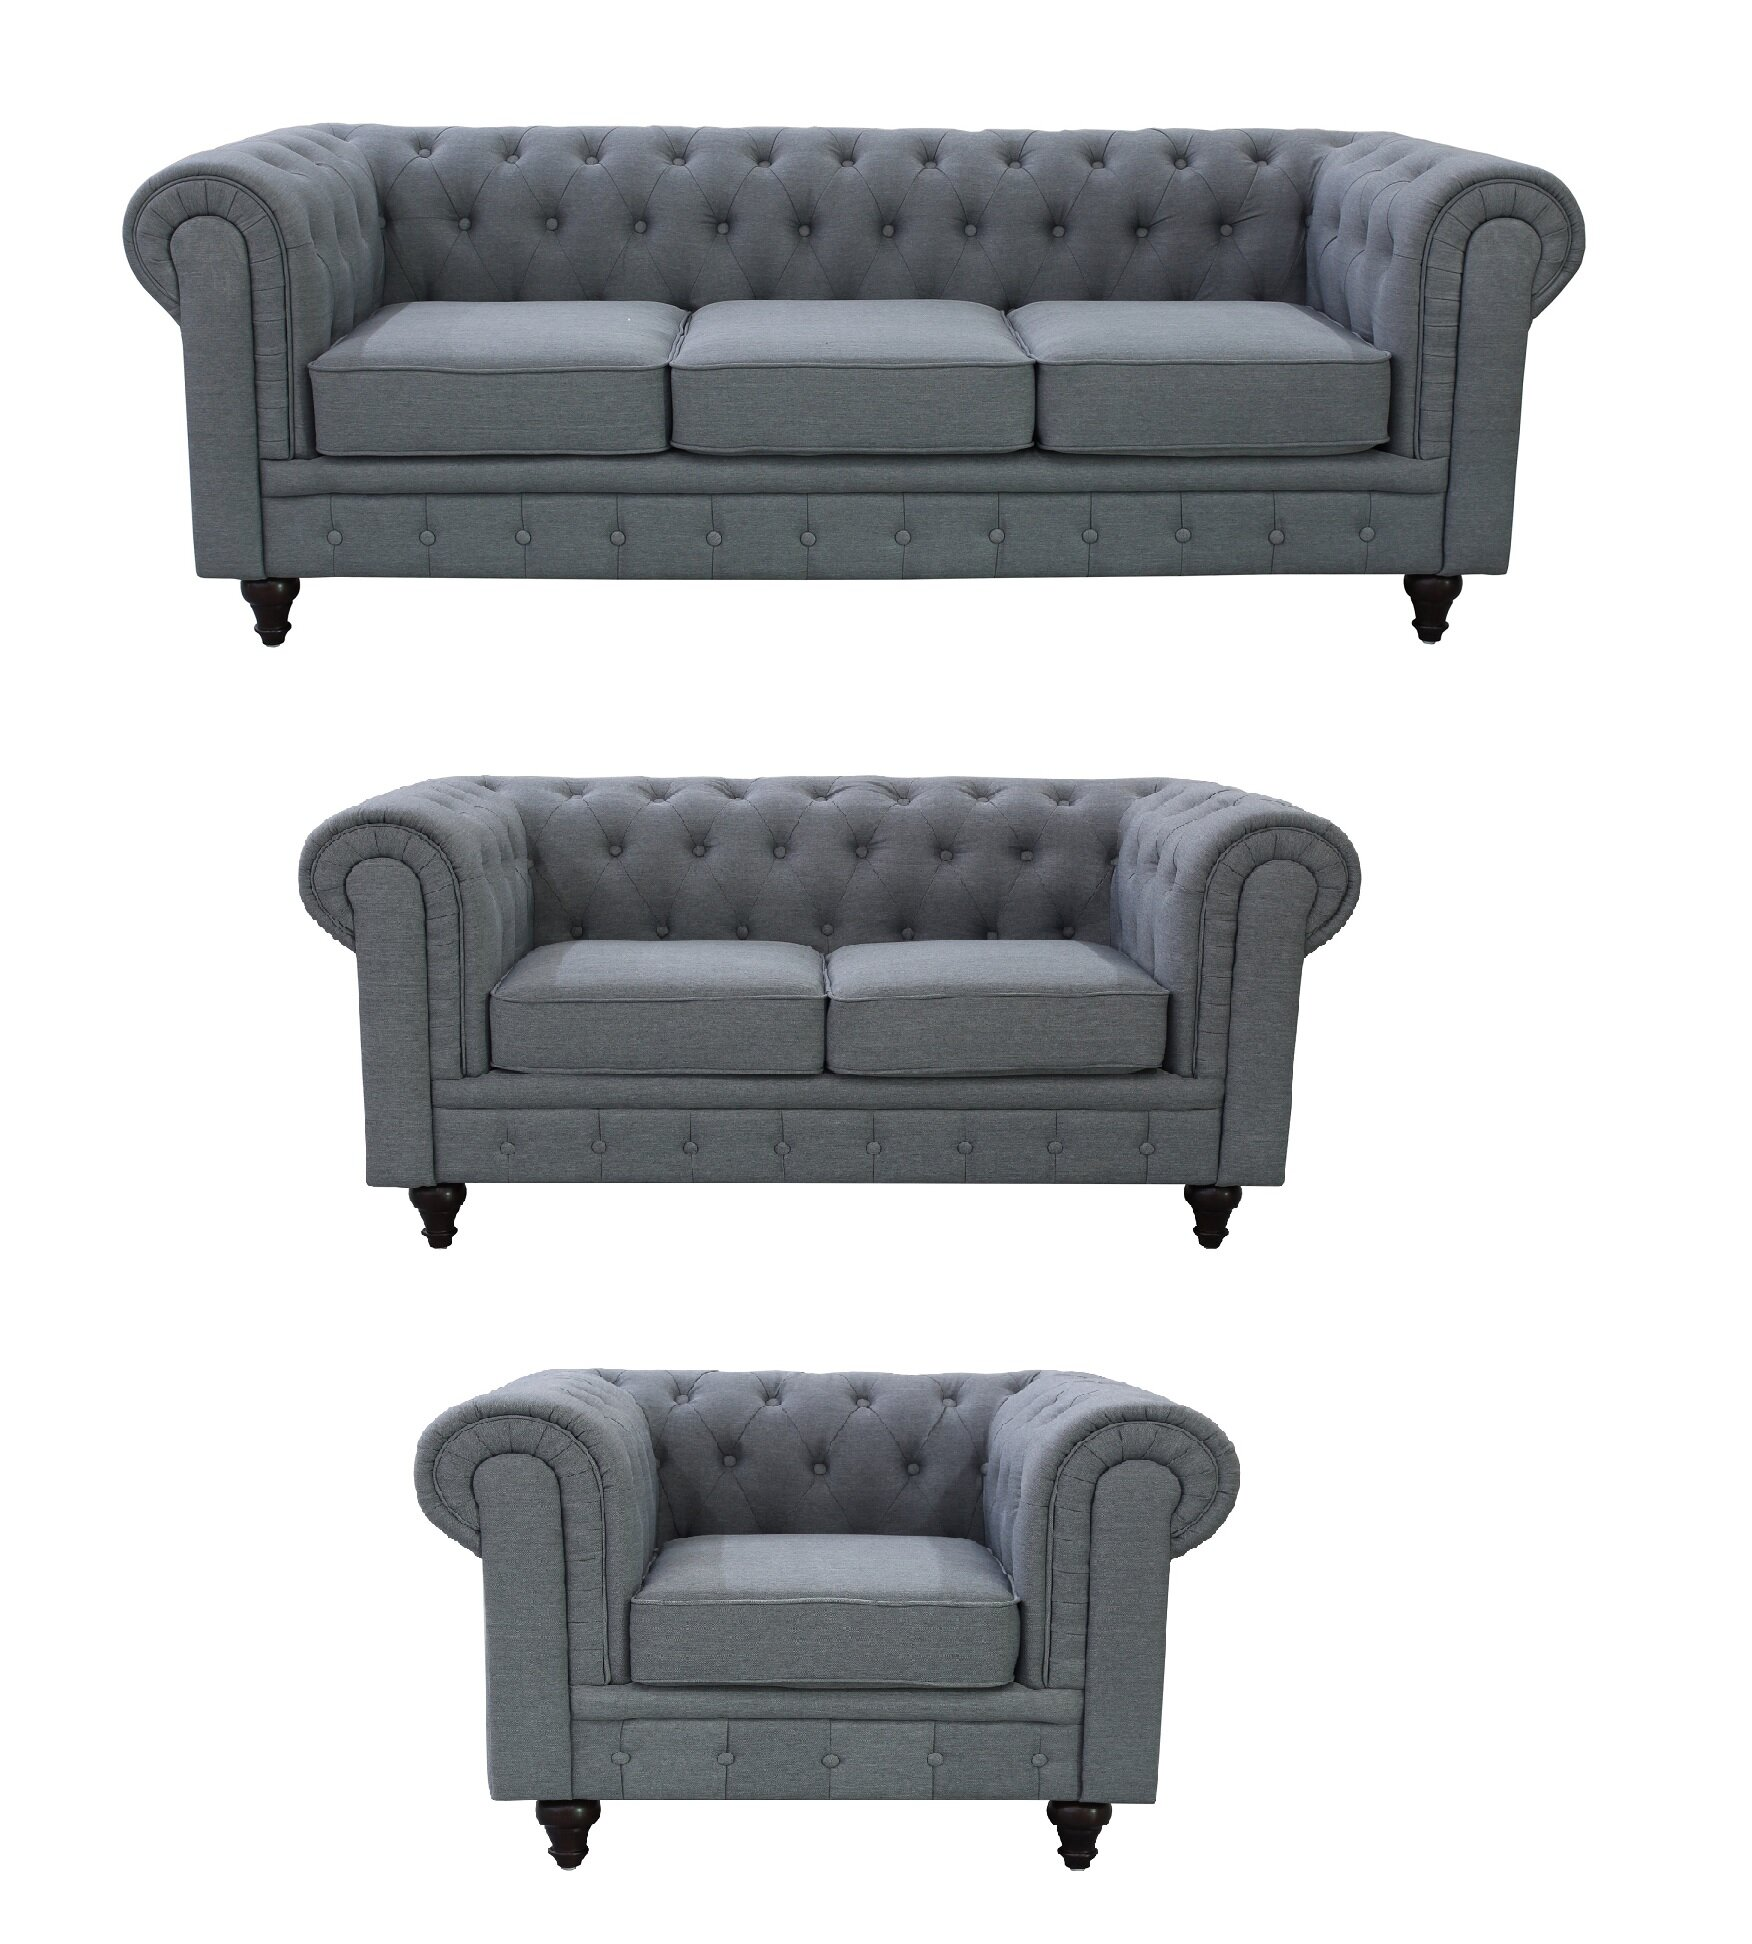 ethan harlem furniture size thrift factory turnpike sofa value living creations sofas stores richmond room near of used full city francisco stunning direct futons midlothian allen on va me warehouse san